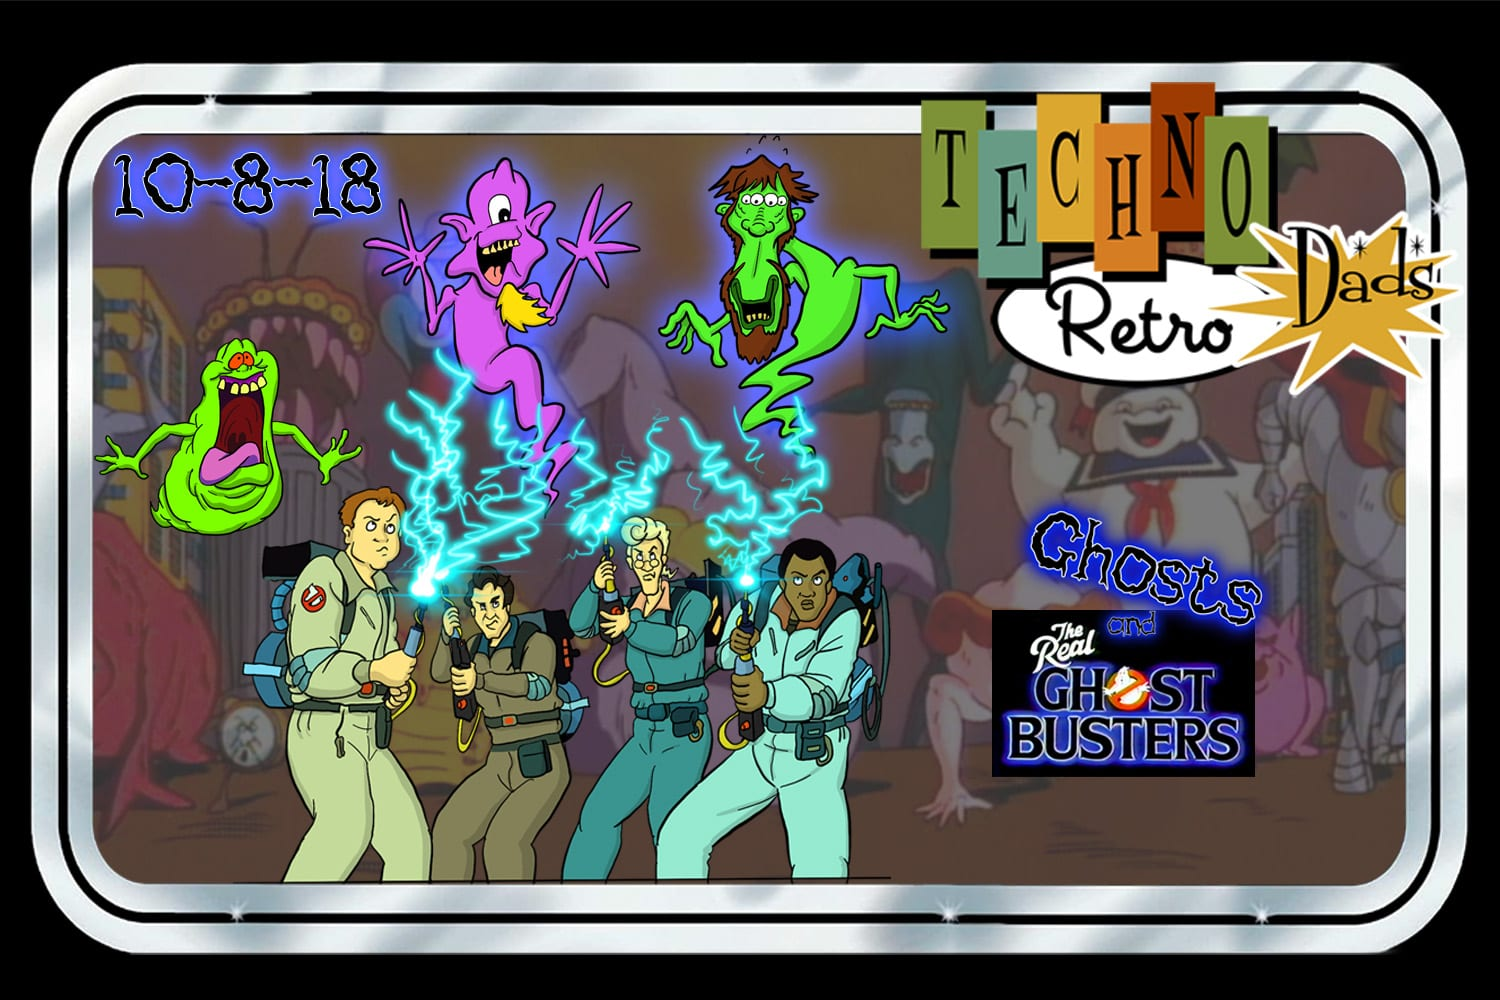 ghosts, Ghostbusters, The Real Ghostbusters